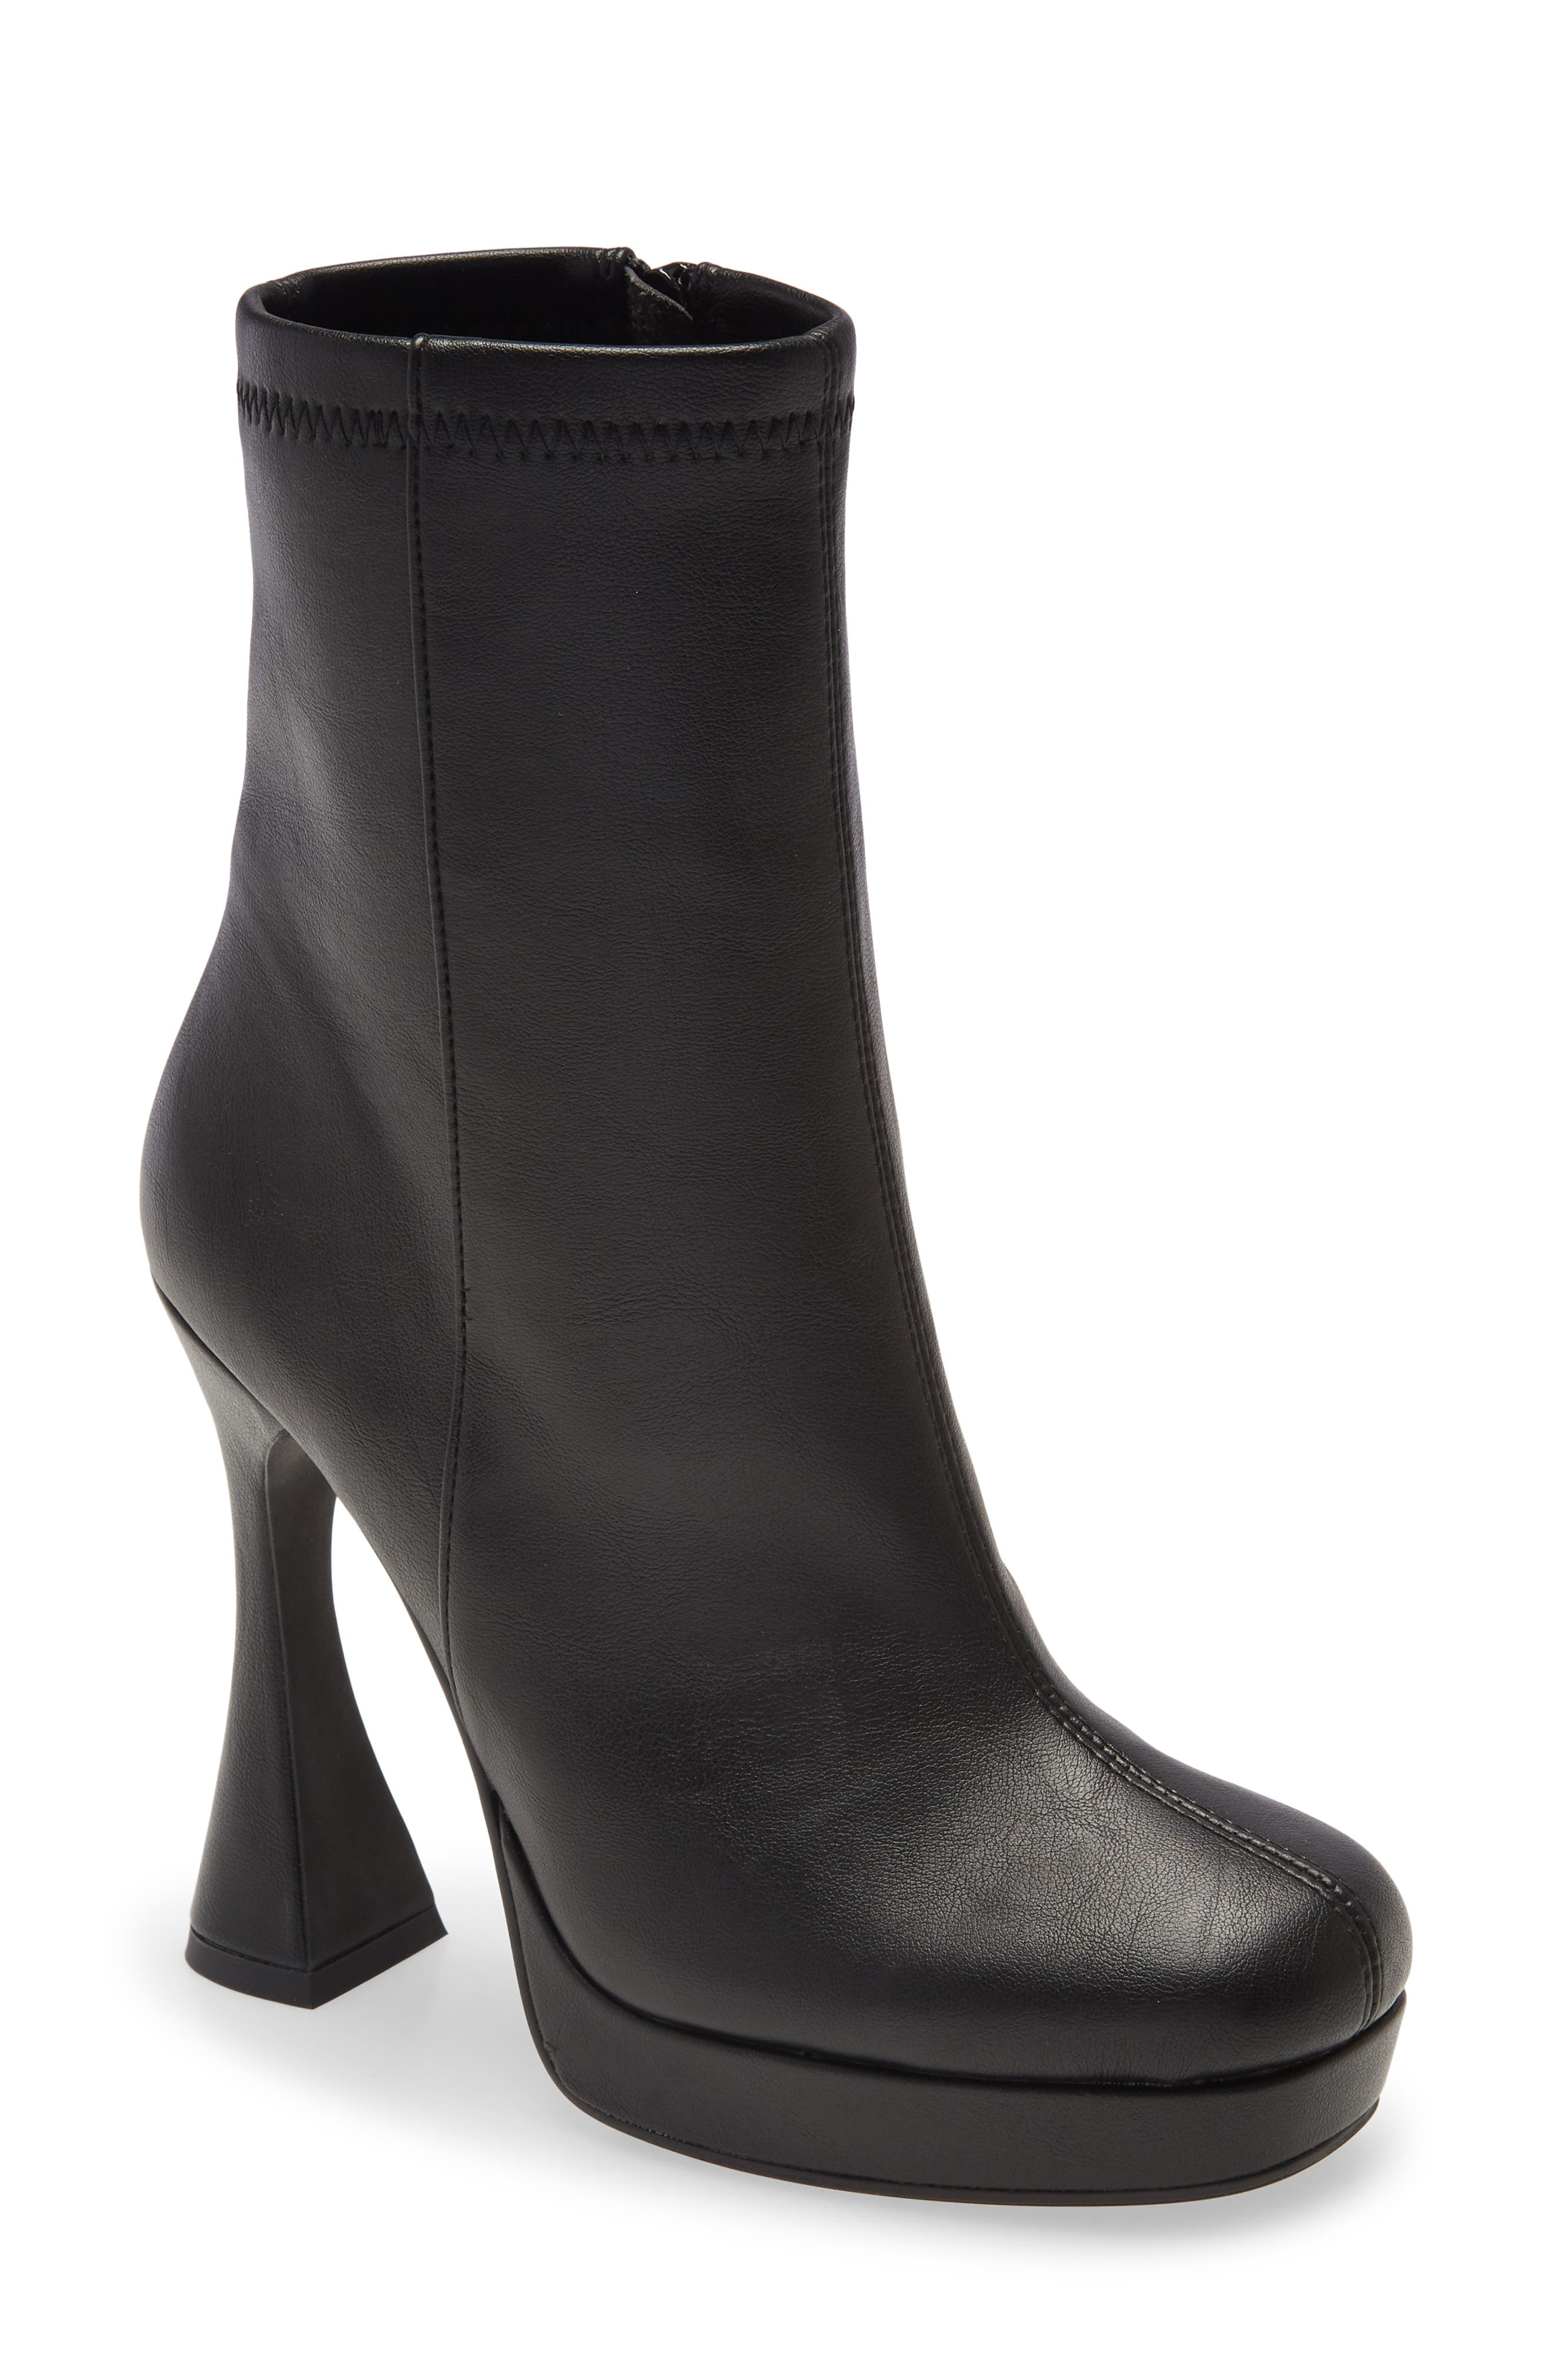 Image of Jeffrey Campbell Jeffery Campbell Bel Air Bootie